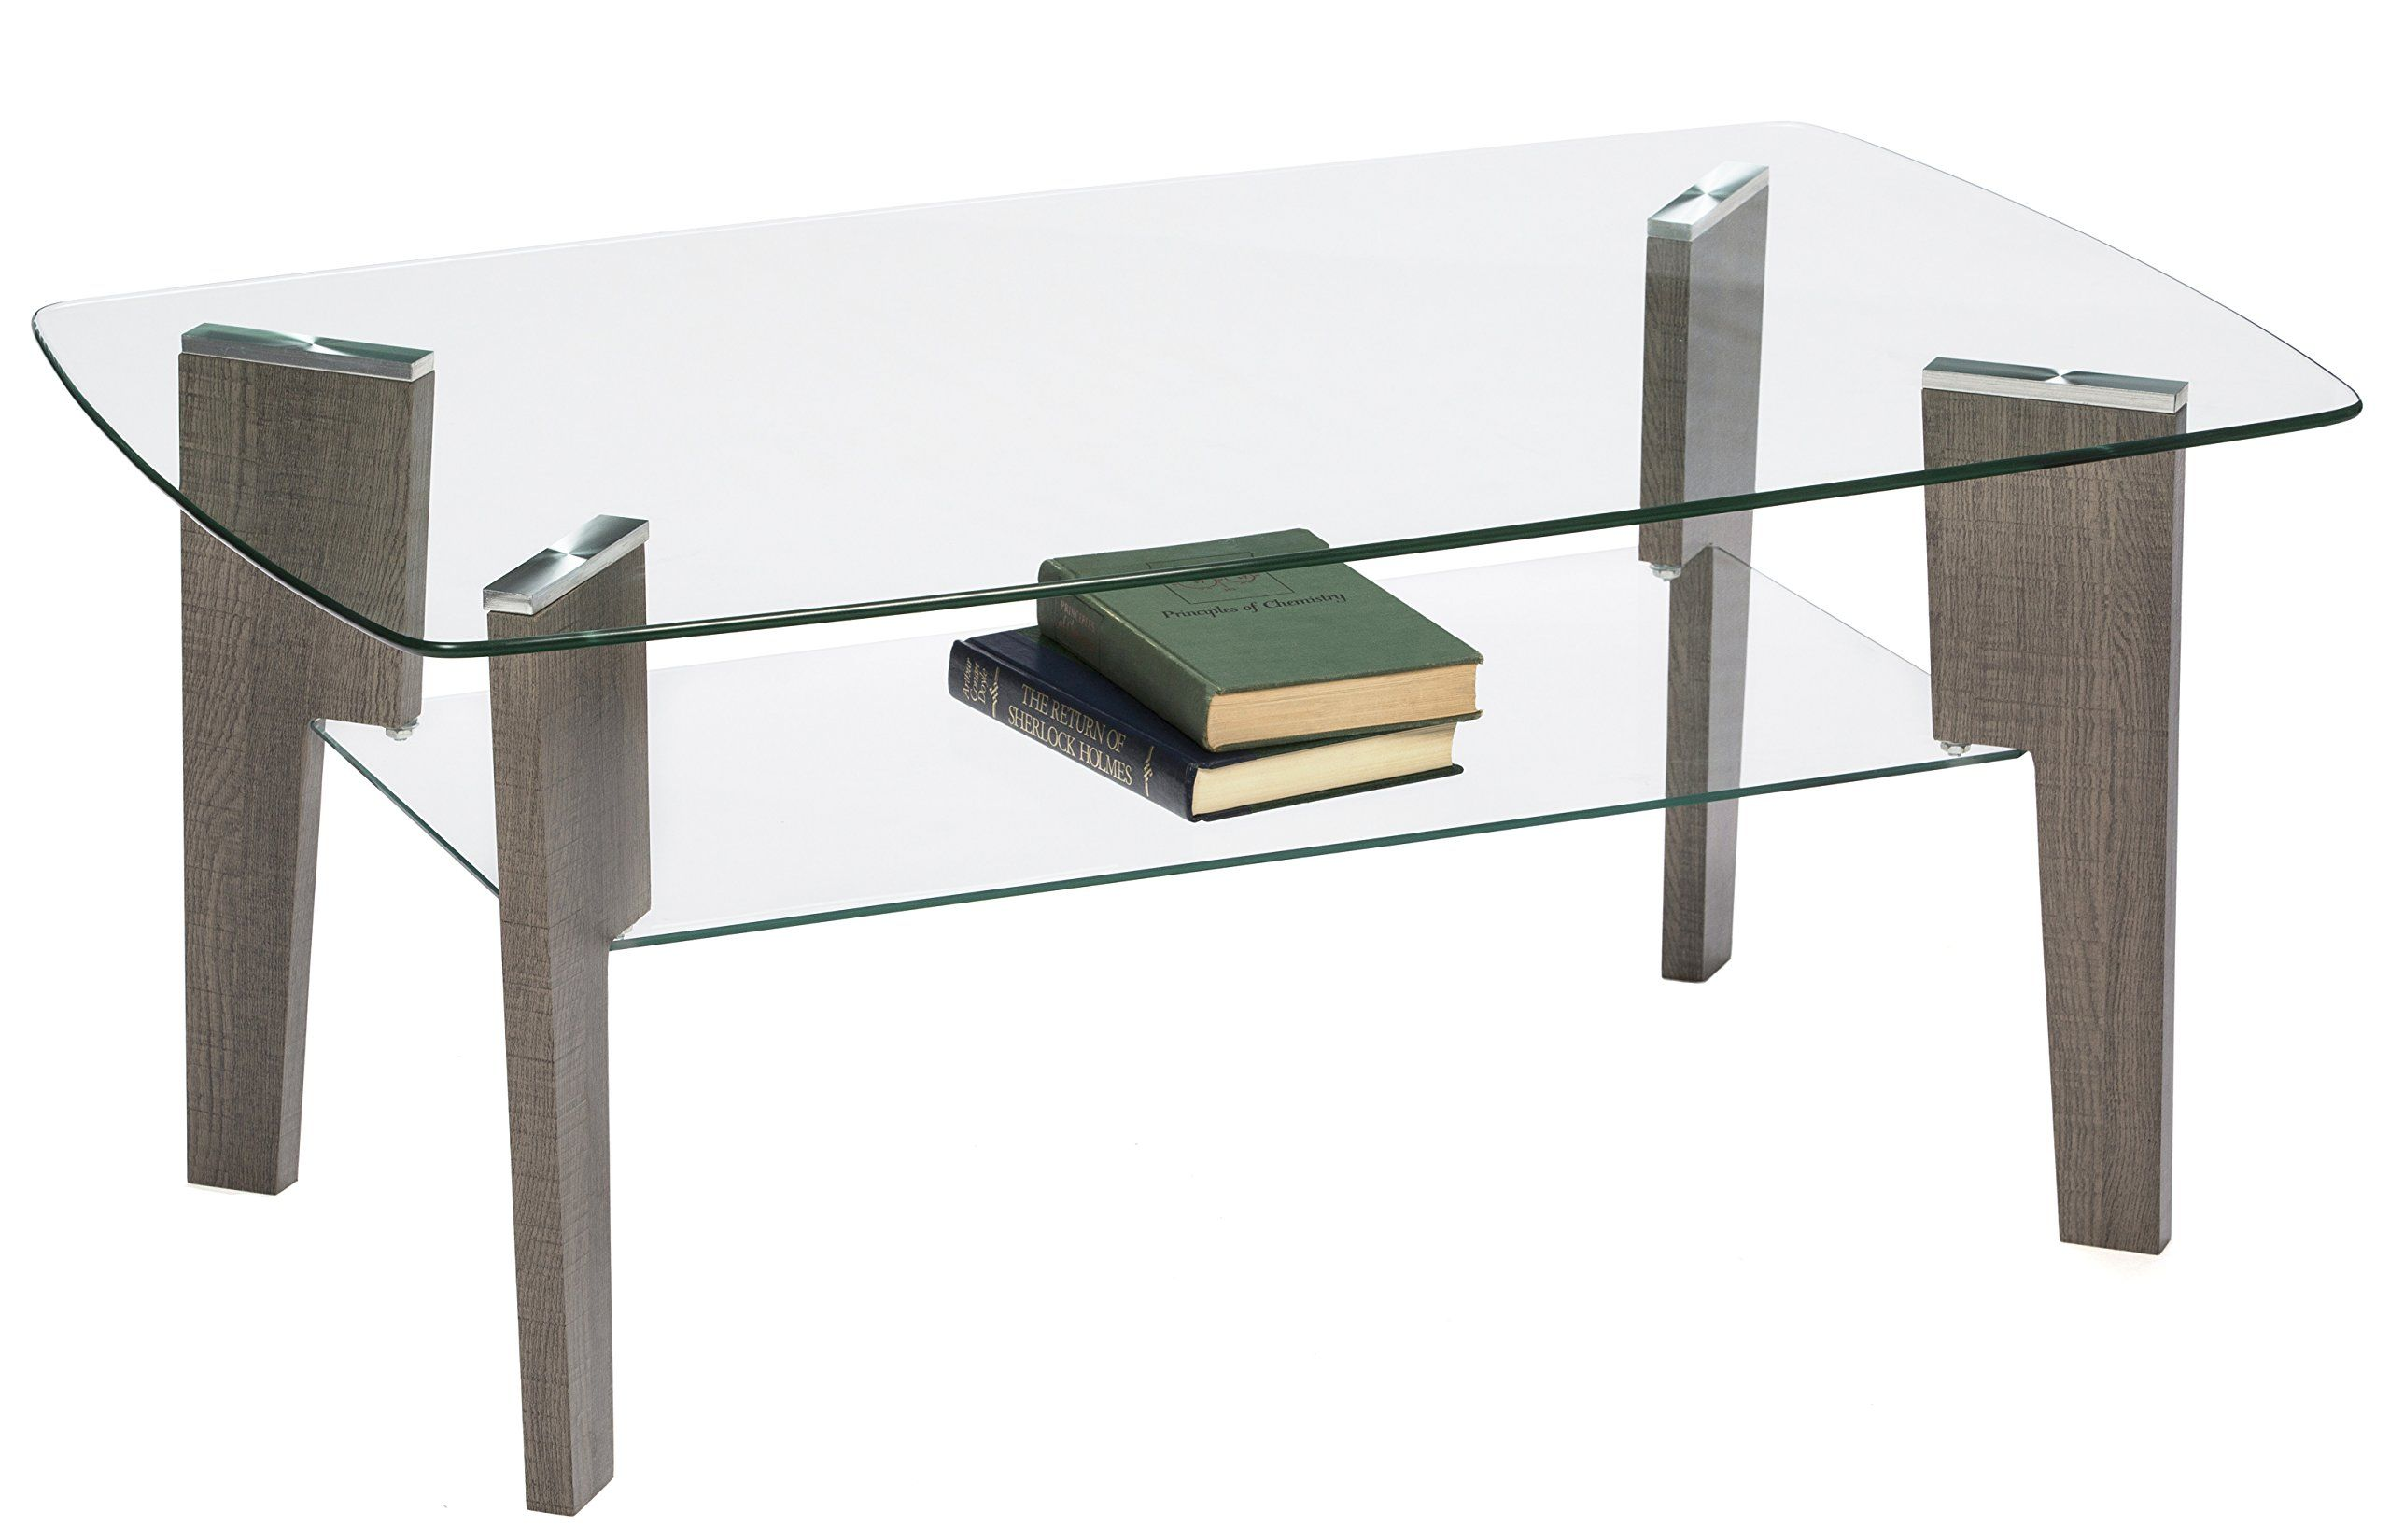 Mango Steam Mid Century Modern Glass Top Coffee Table 41 4 L X 25 5 W Click On The Pictur Coffee Table Glass Top Coffee Table Round Coffee Table Living Room [ 1650 x 2560 Pixel ]